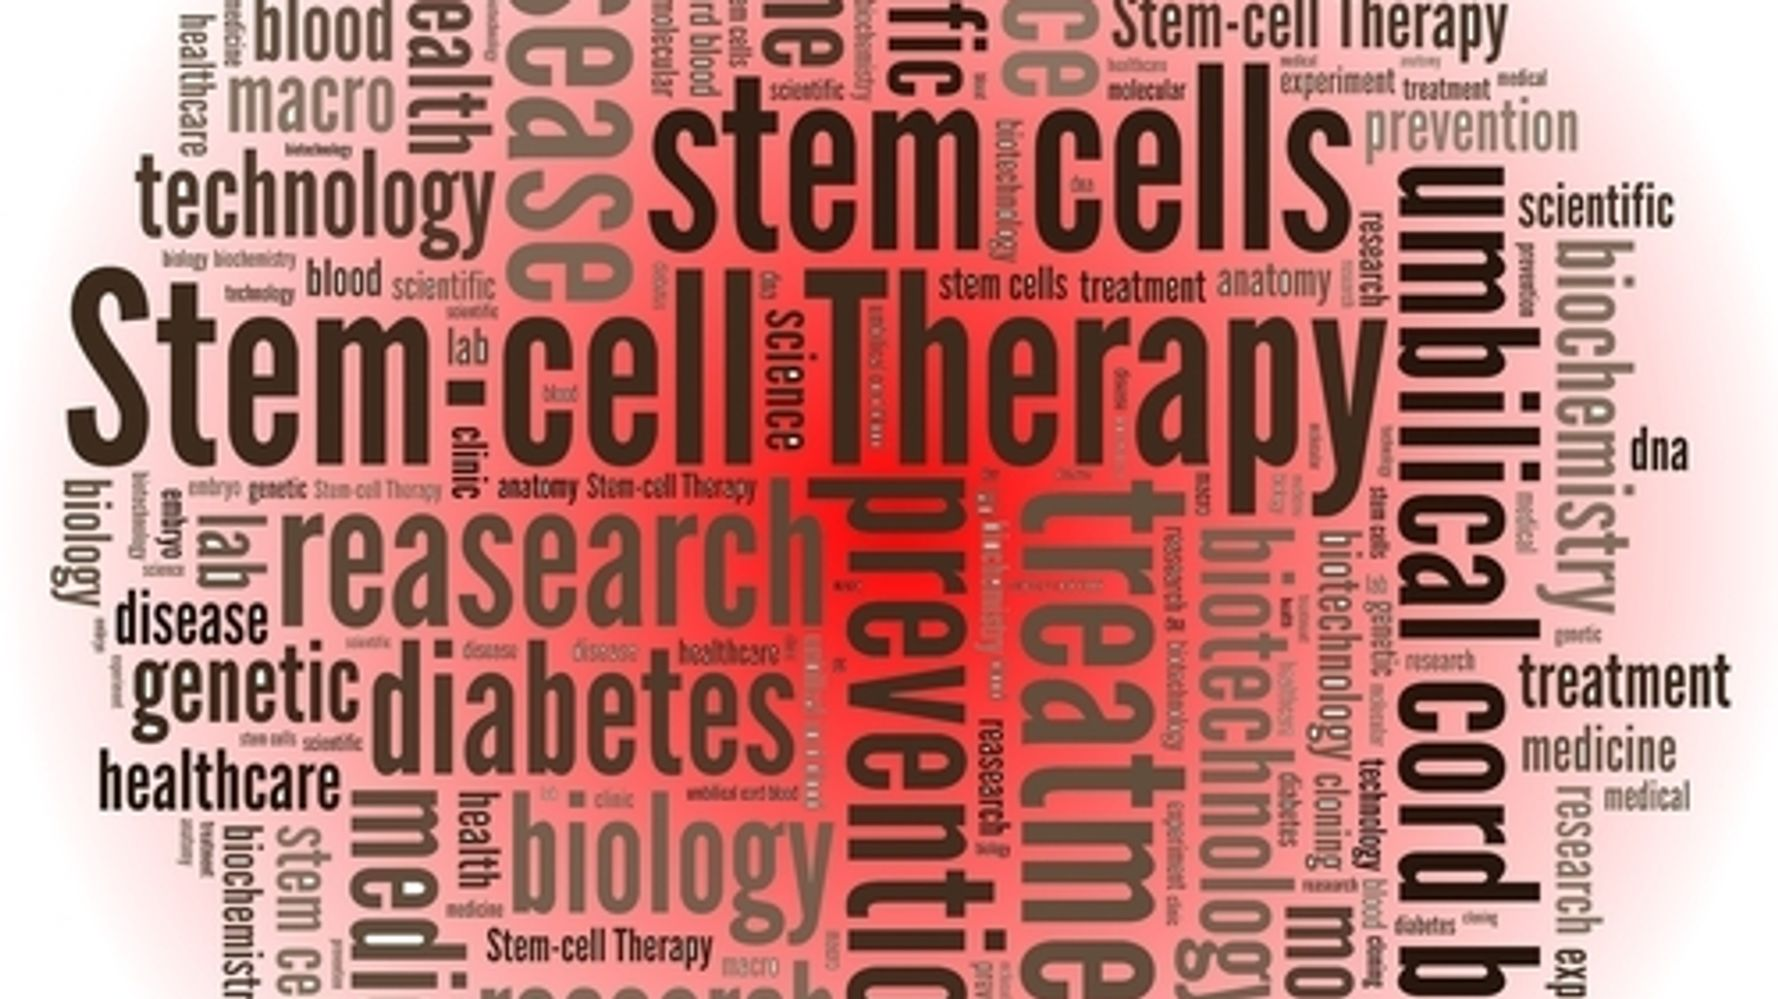 Outrage of the Month: Illegal Stem Cell Treatments Endanger